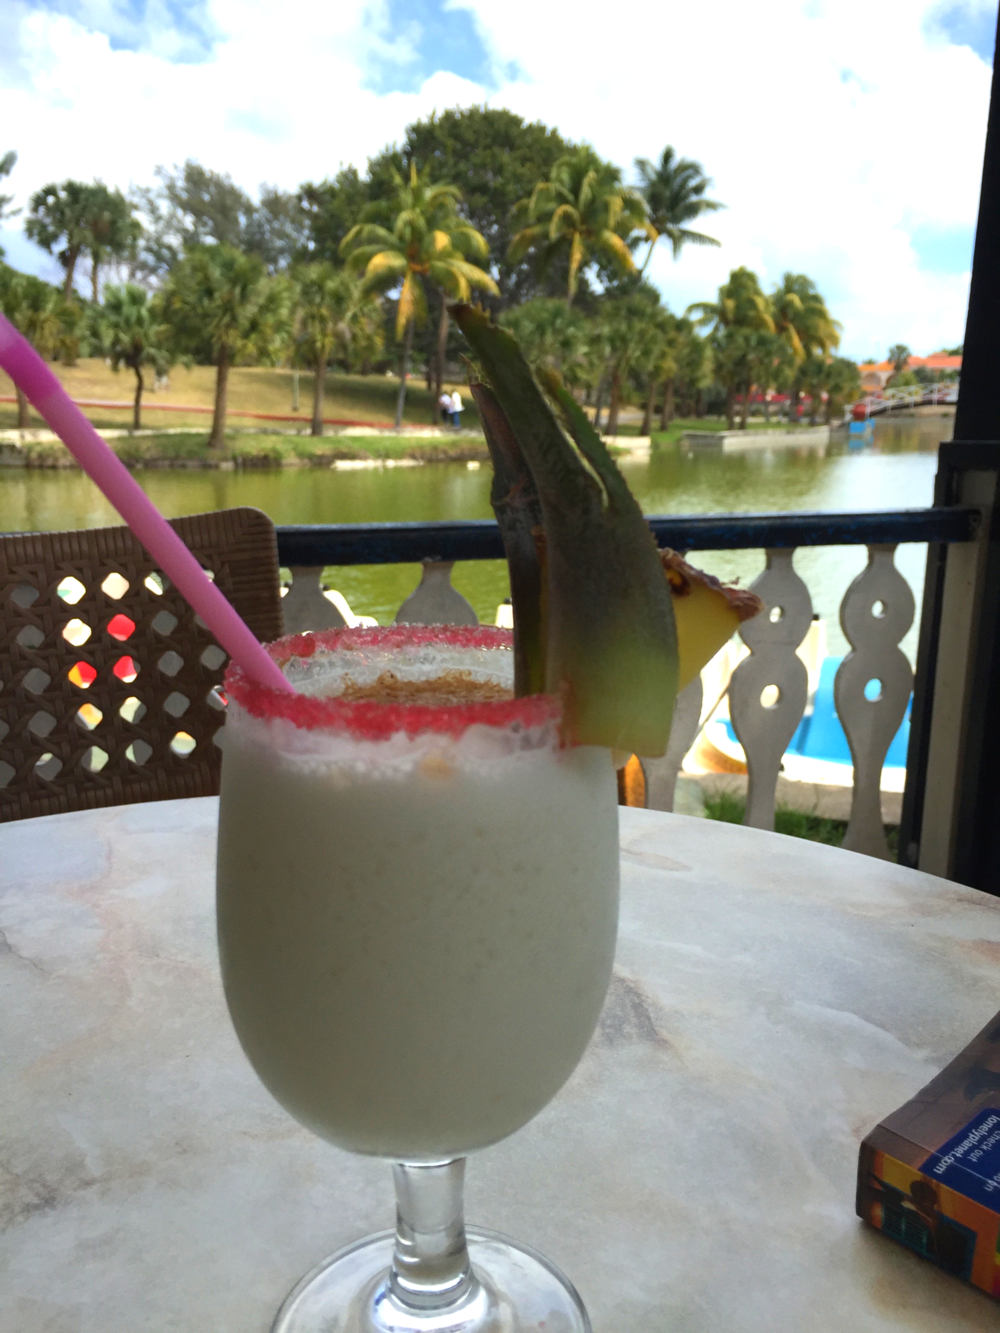 The best Pina Colada in Cuba was offered to us in Veradero at the Parque Josone.